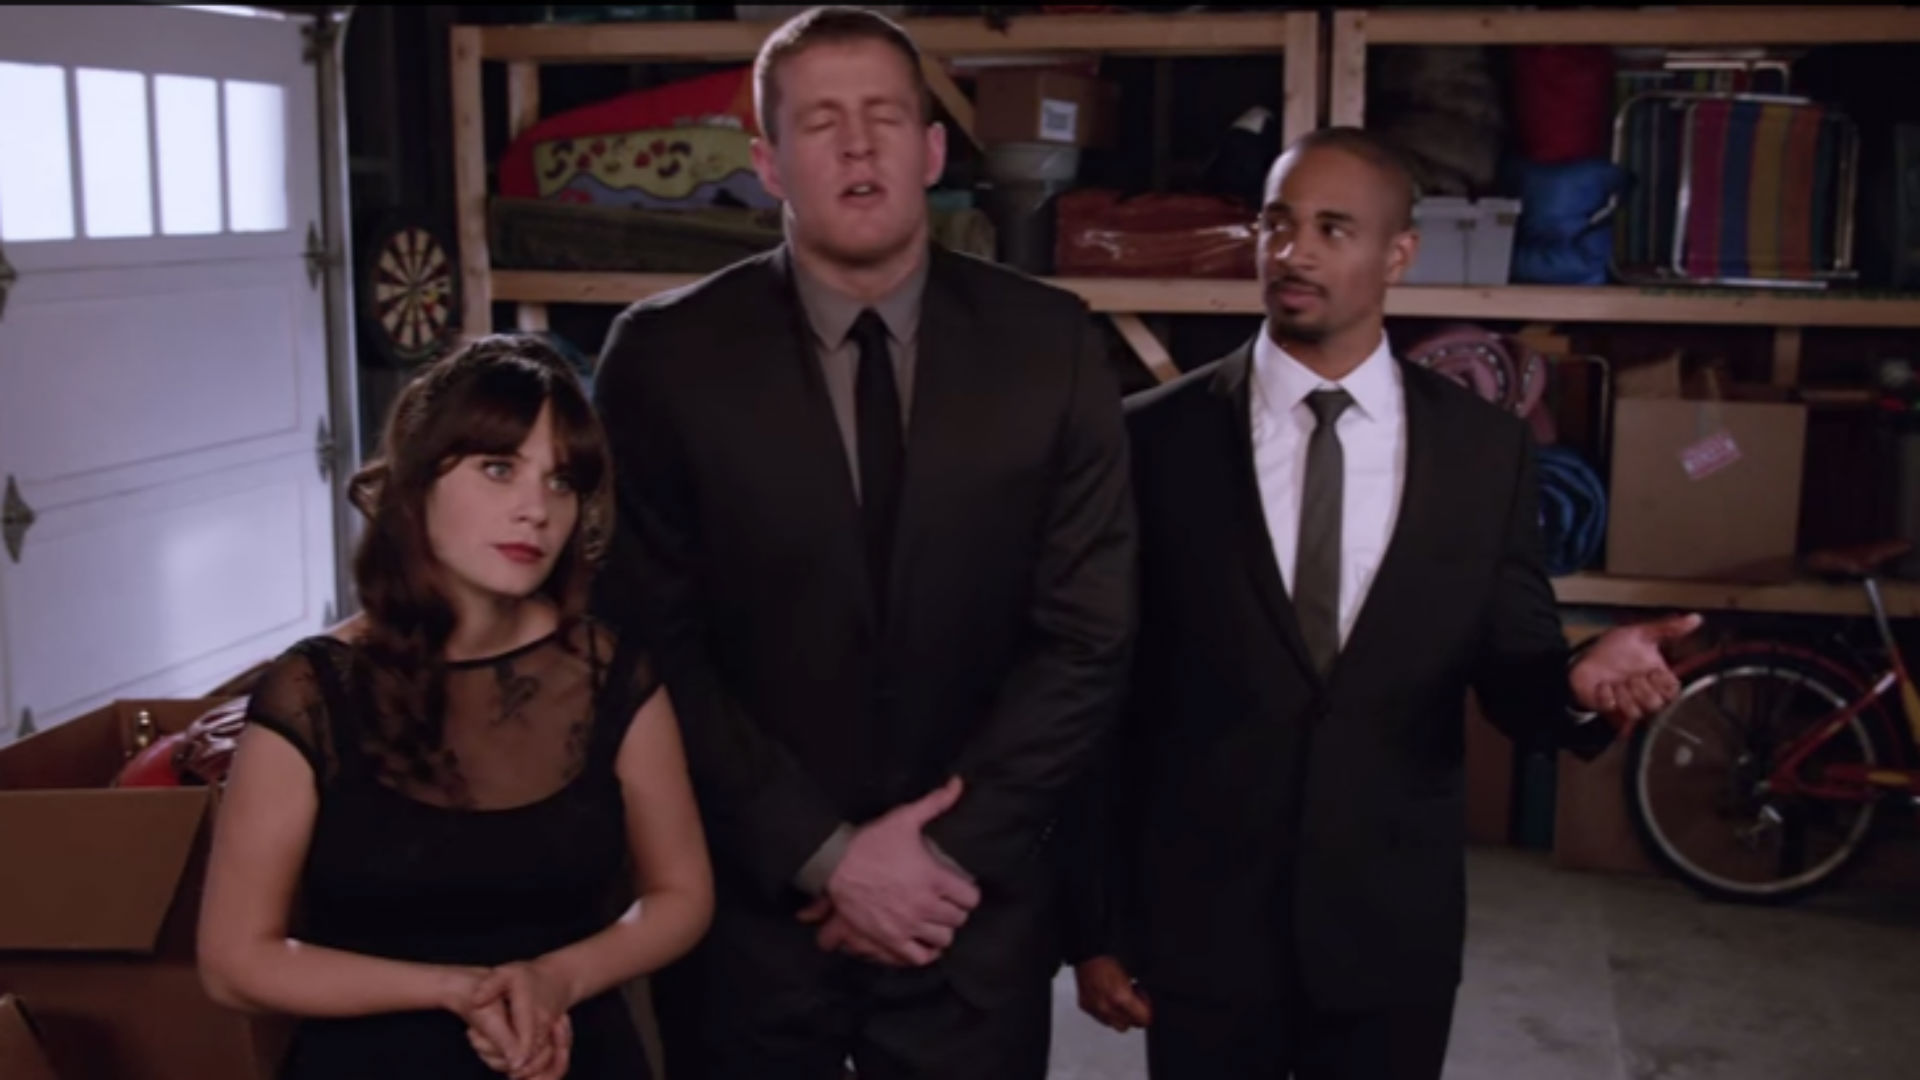 J.J. Watt sings about hot dogs in 'New Girl' cameo